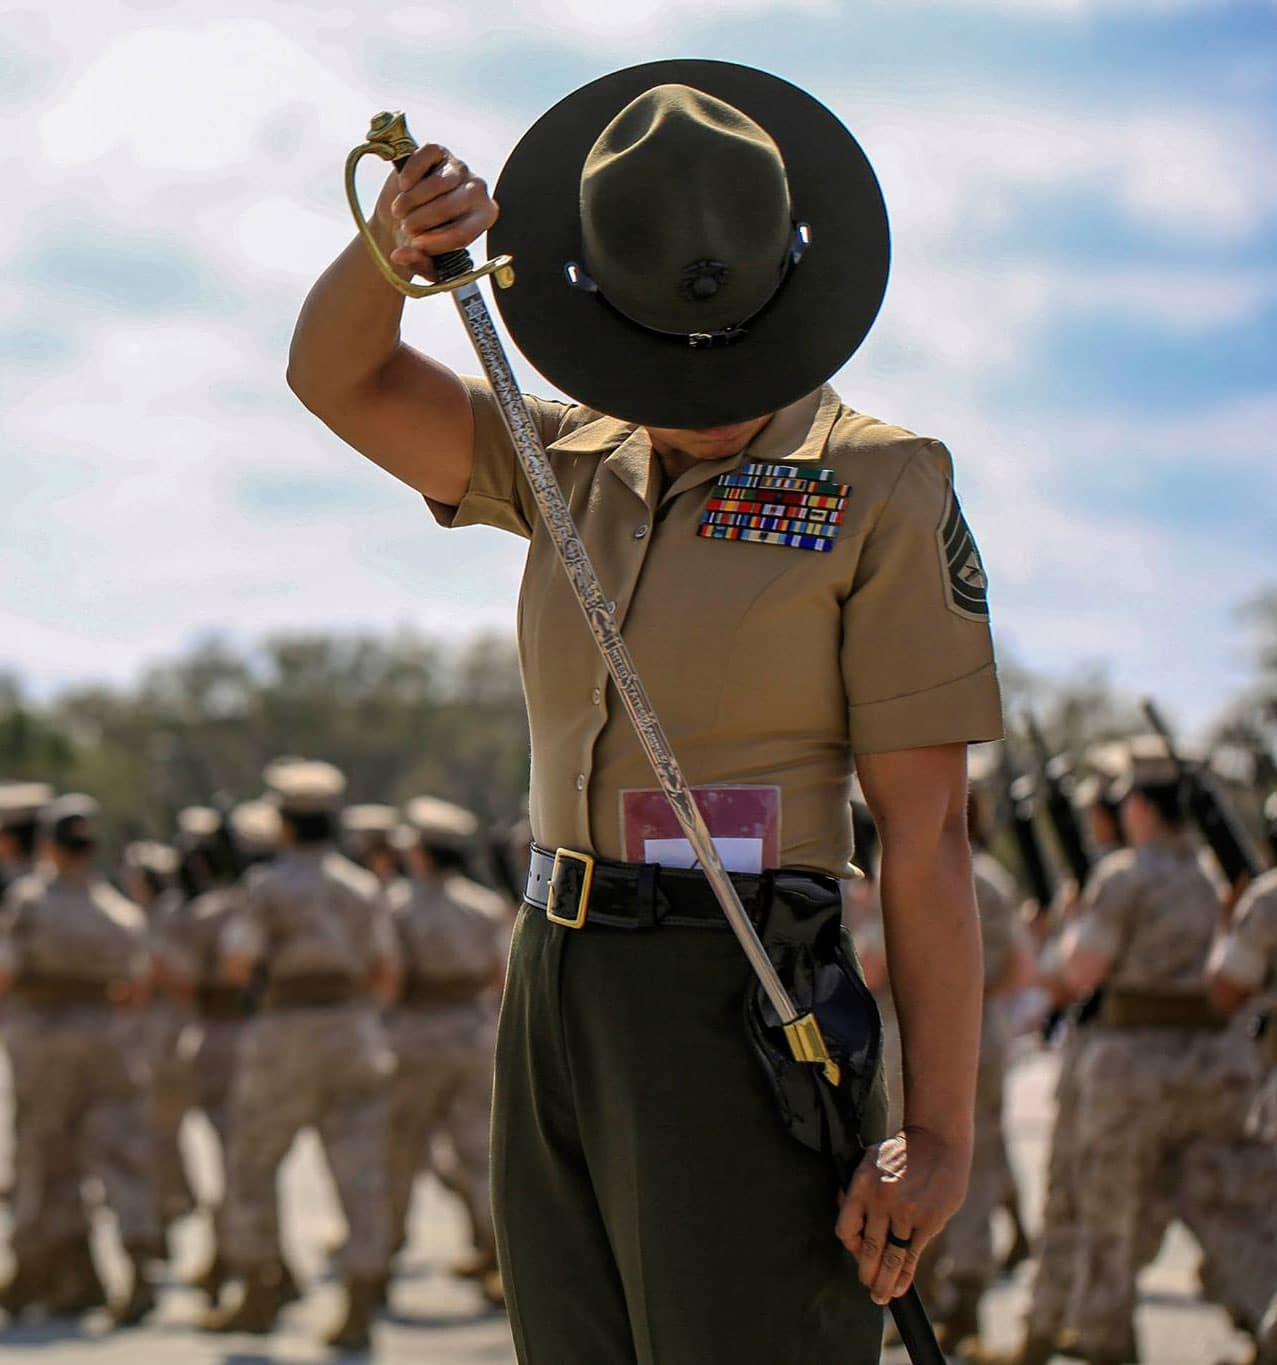 USMC Senior Drill Instructor Gunnery Sgt. Mayra Garcia returning her sword to her scabbard during a final drill evaluation at Peatross parade deck.